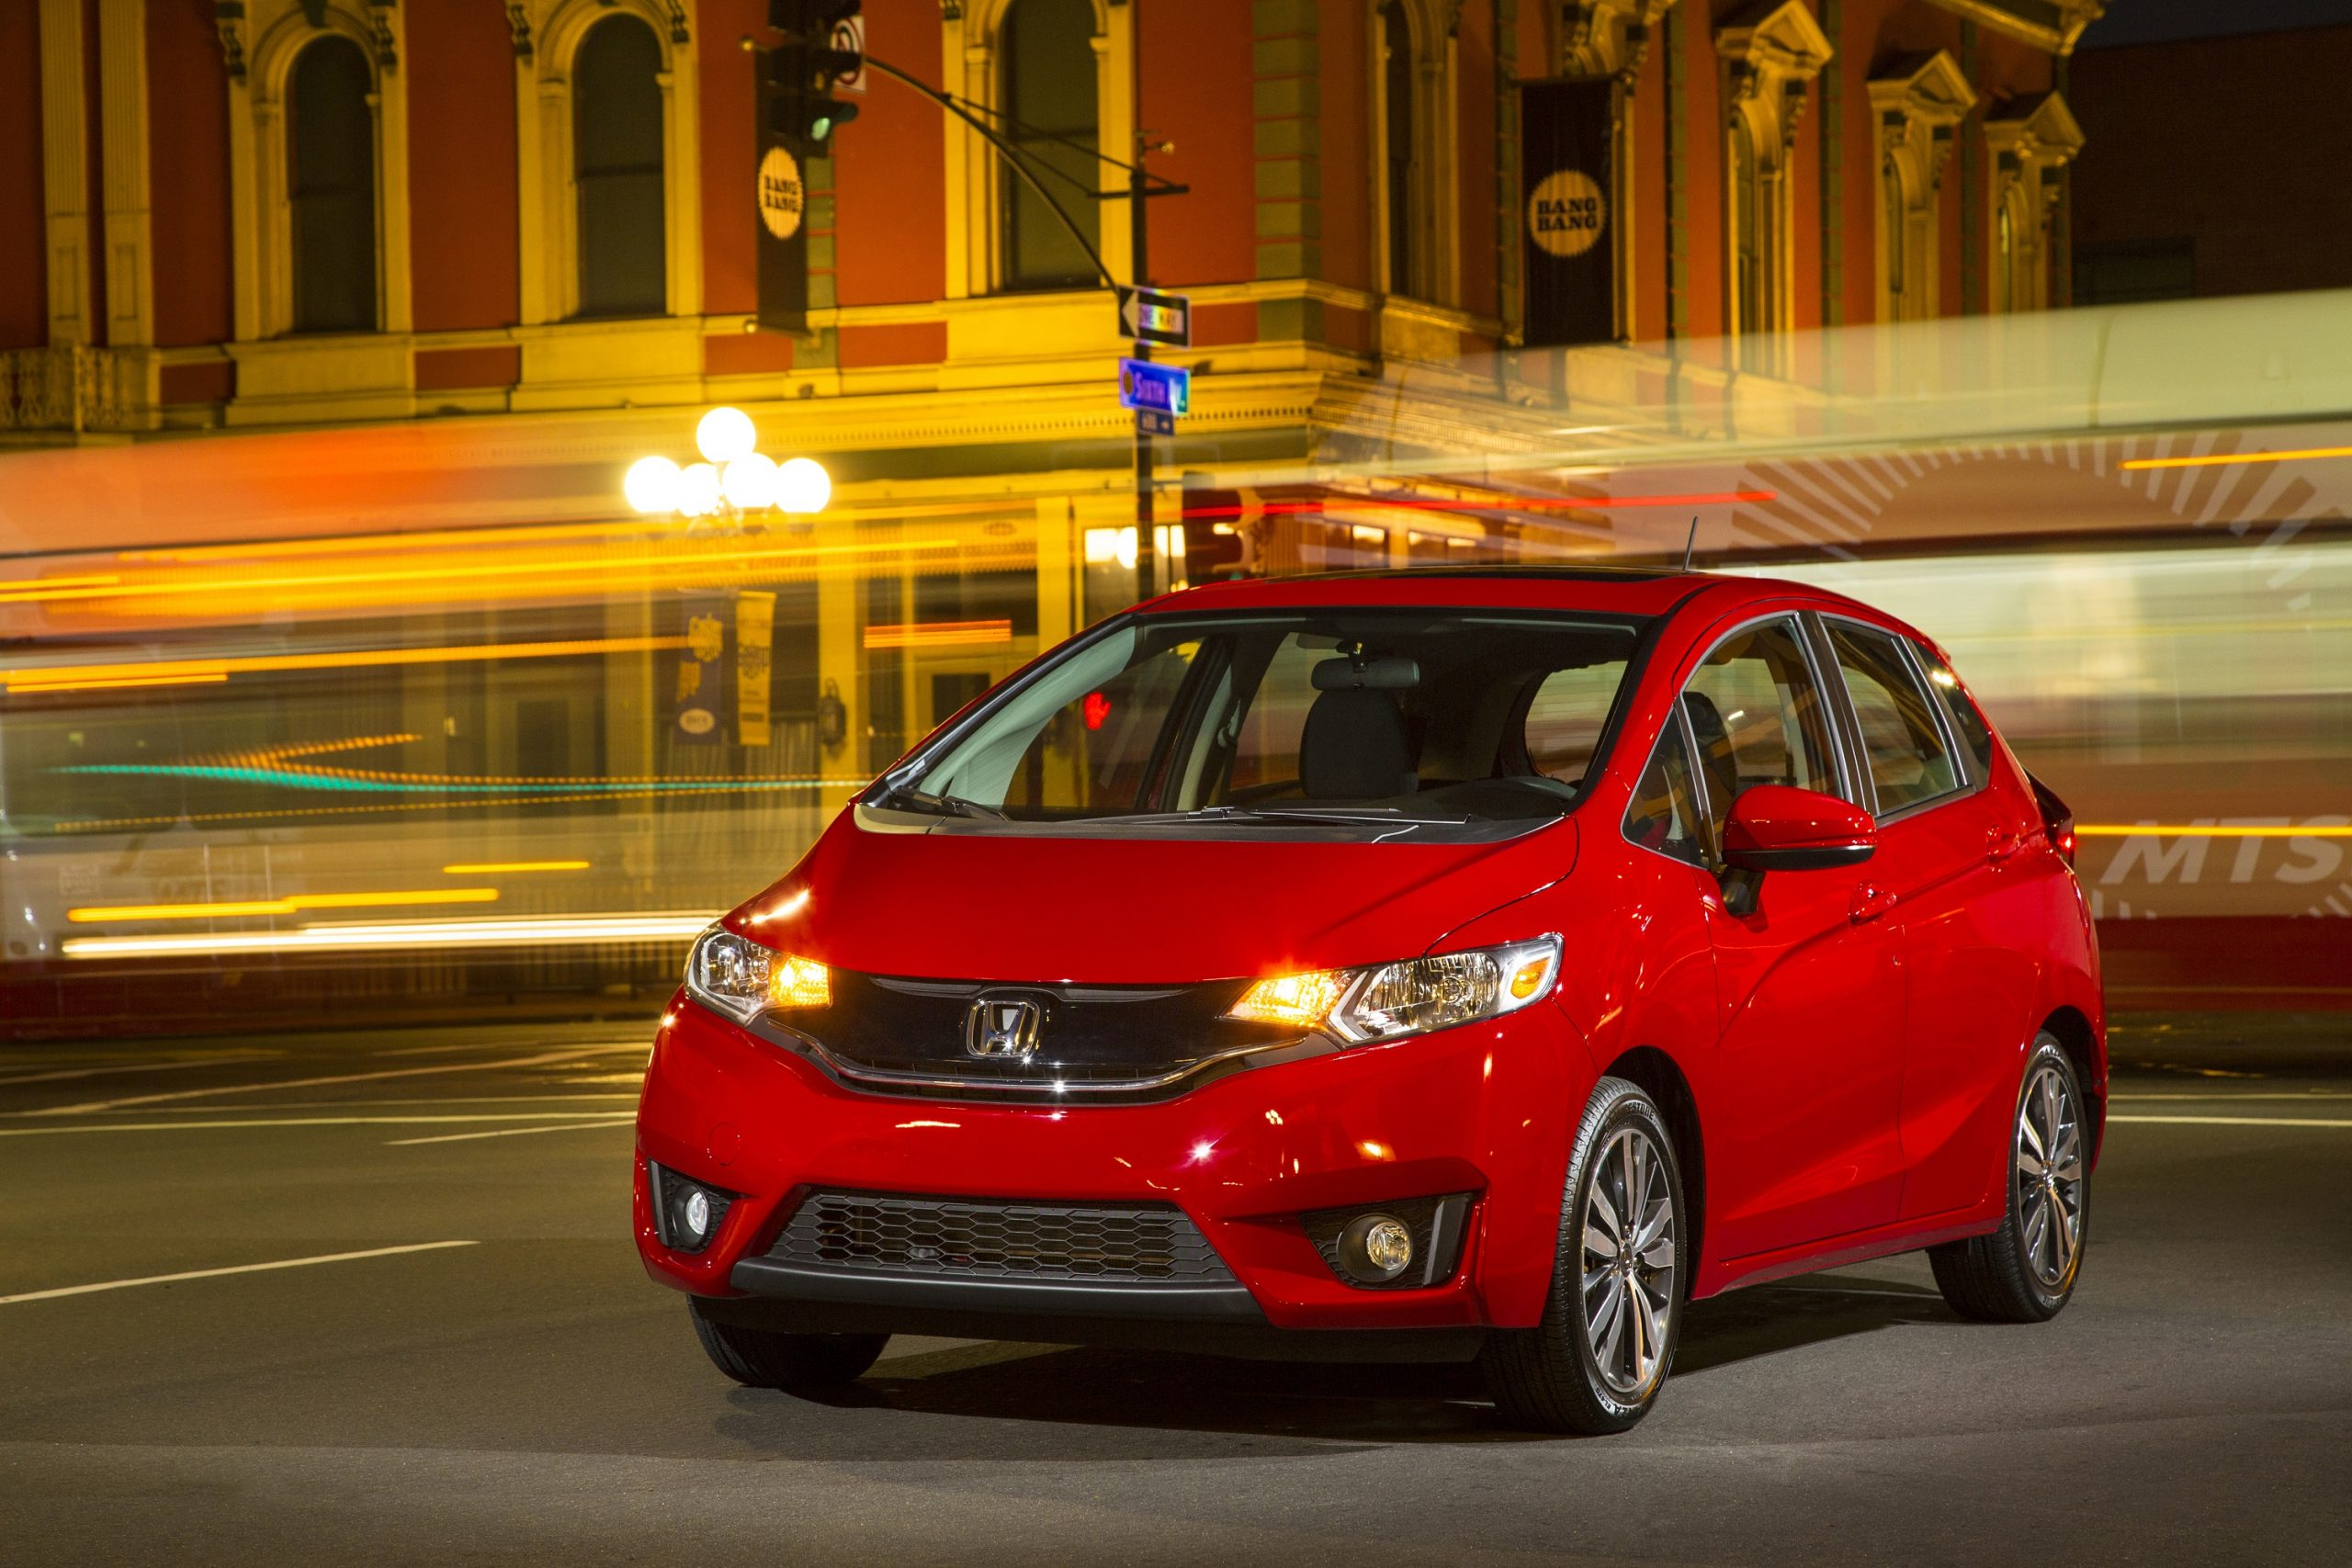 A red 2015 Honda Fit shot on a long exposure setting at night, making the traffic behind blur